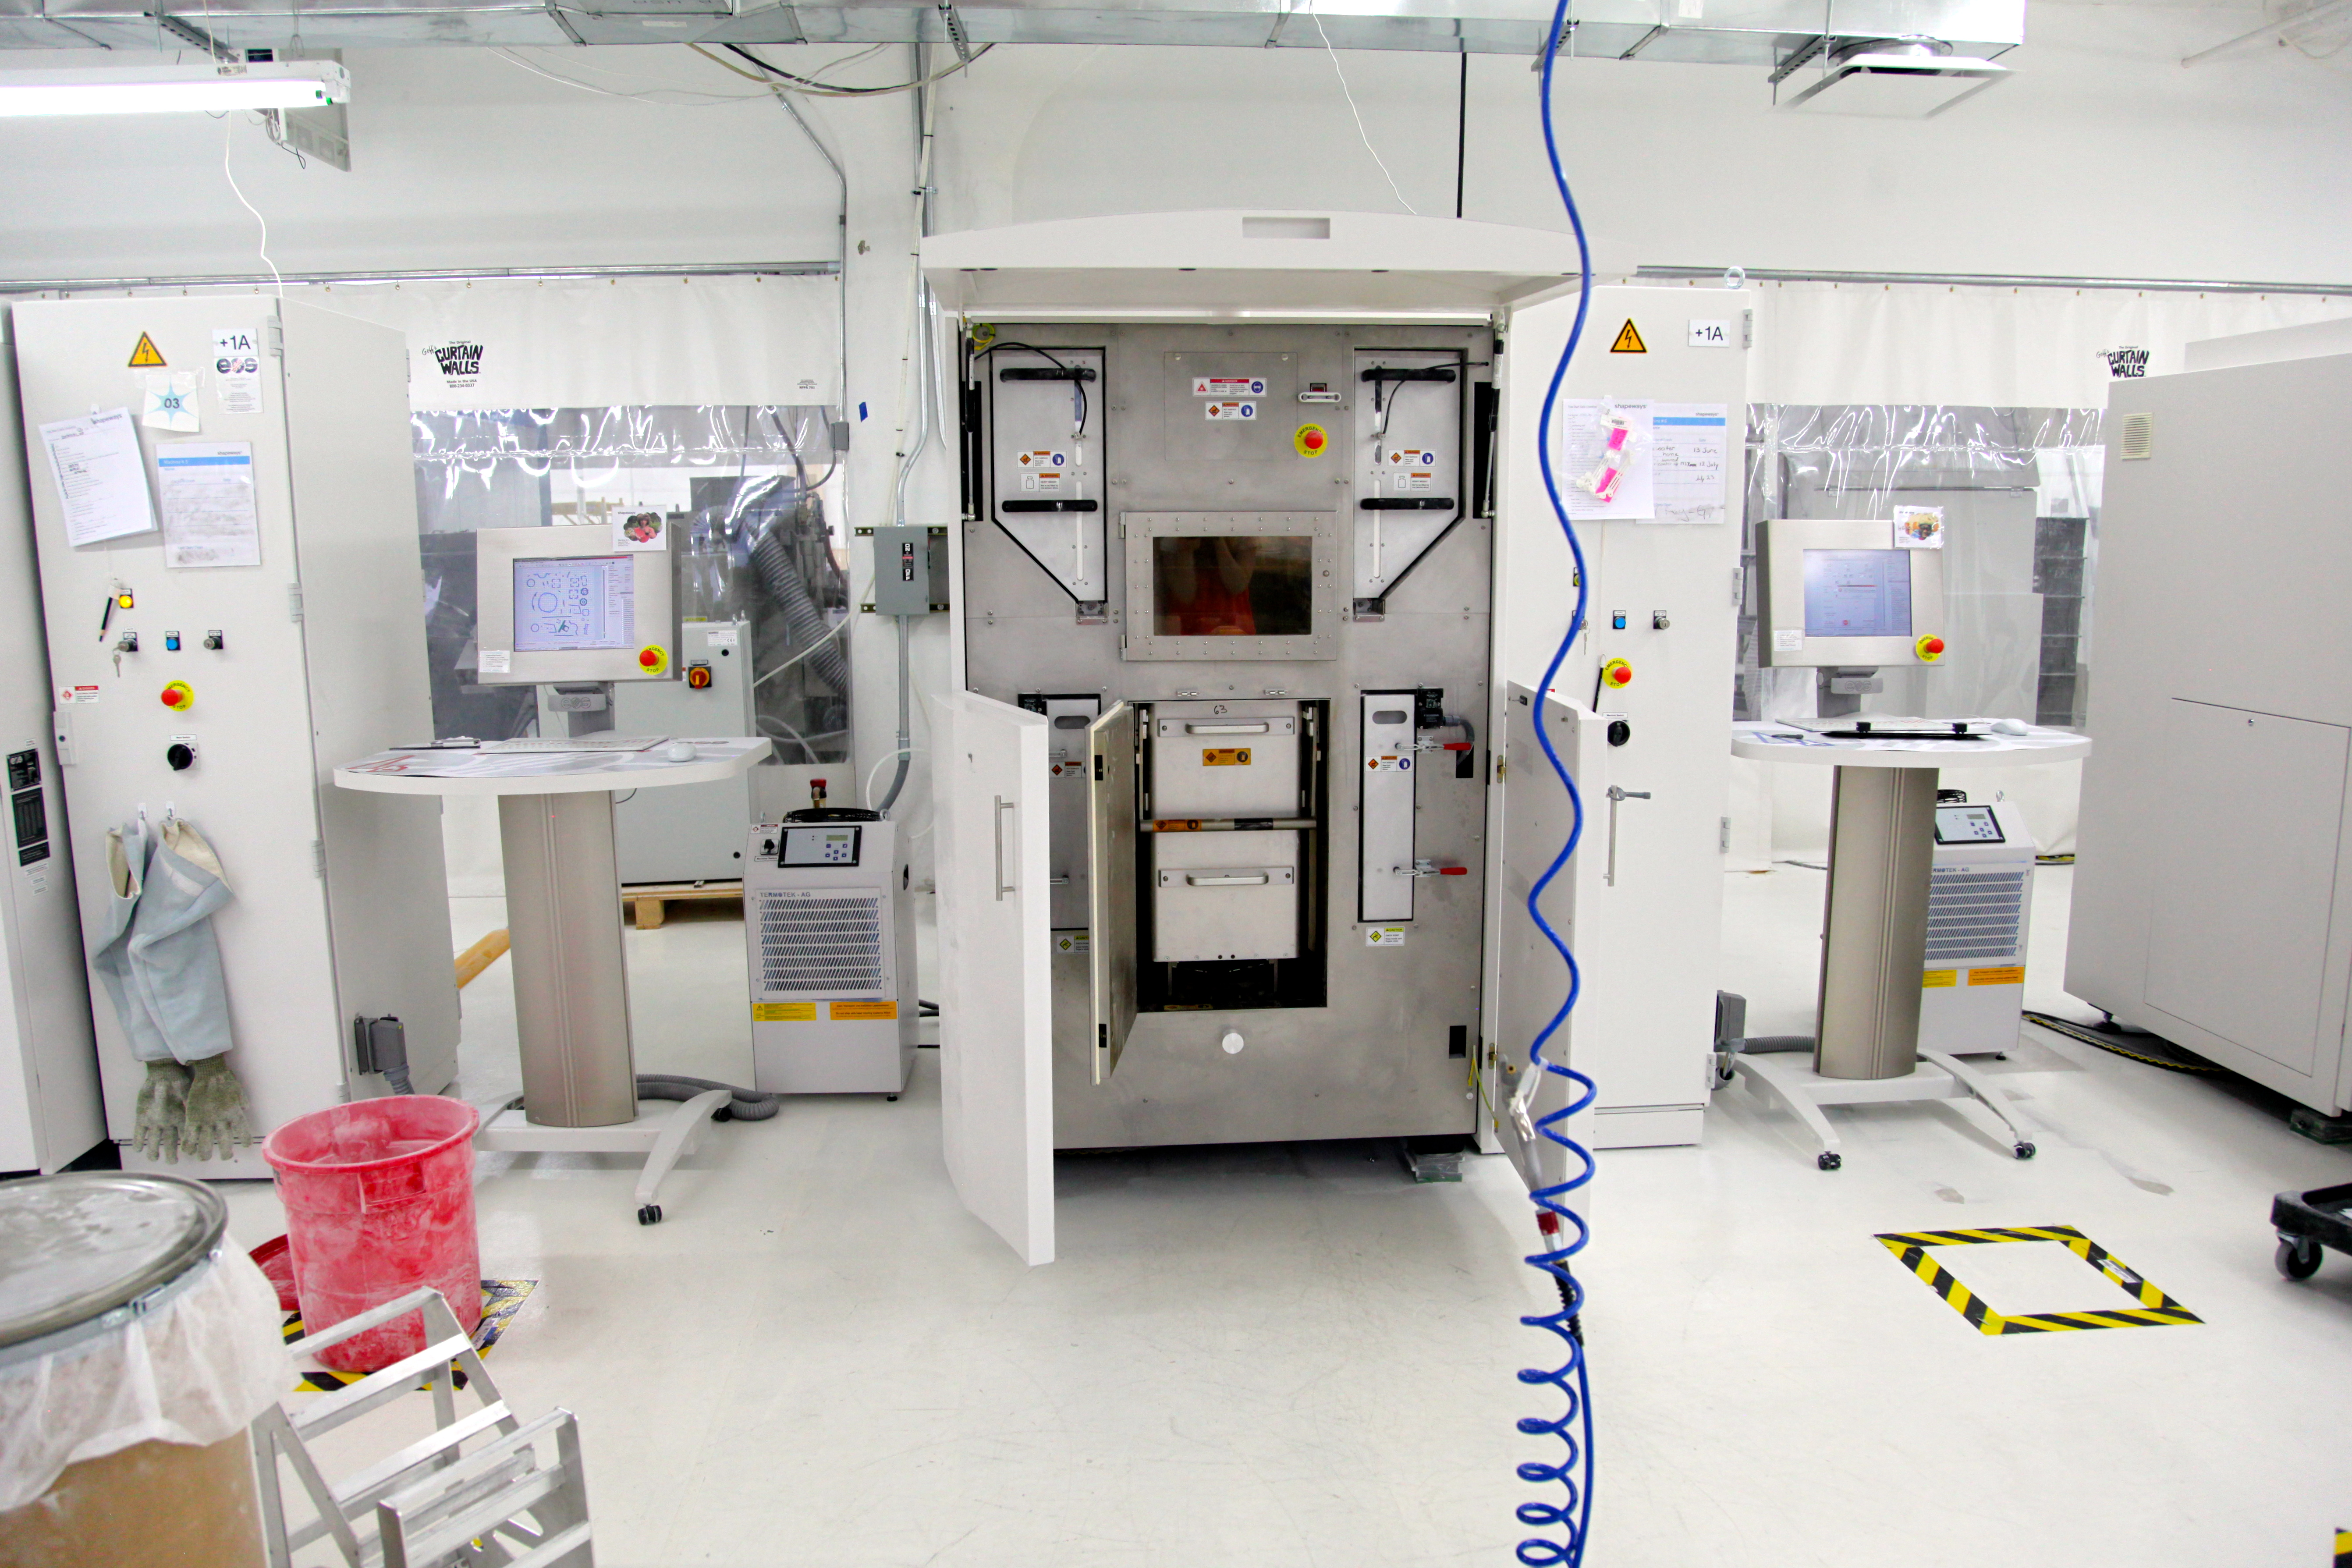 A professional grade SLS 3D printer at the Shapeways factory in New York. Photo by Signe Brewster.